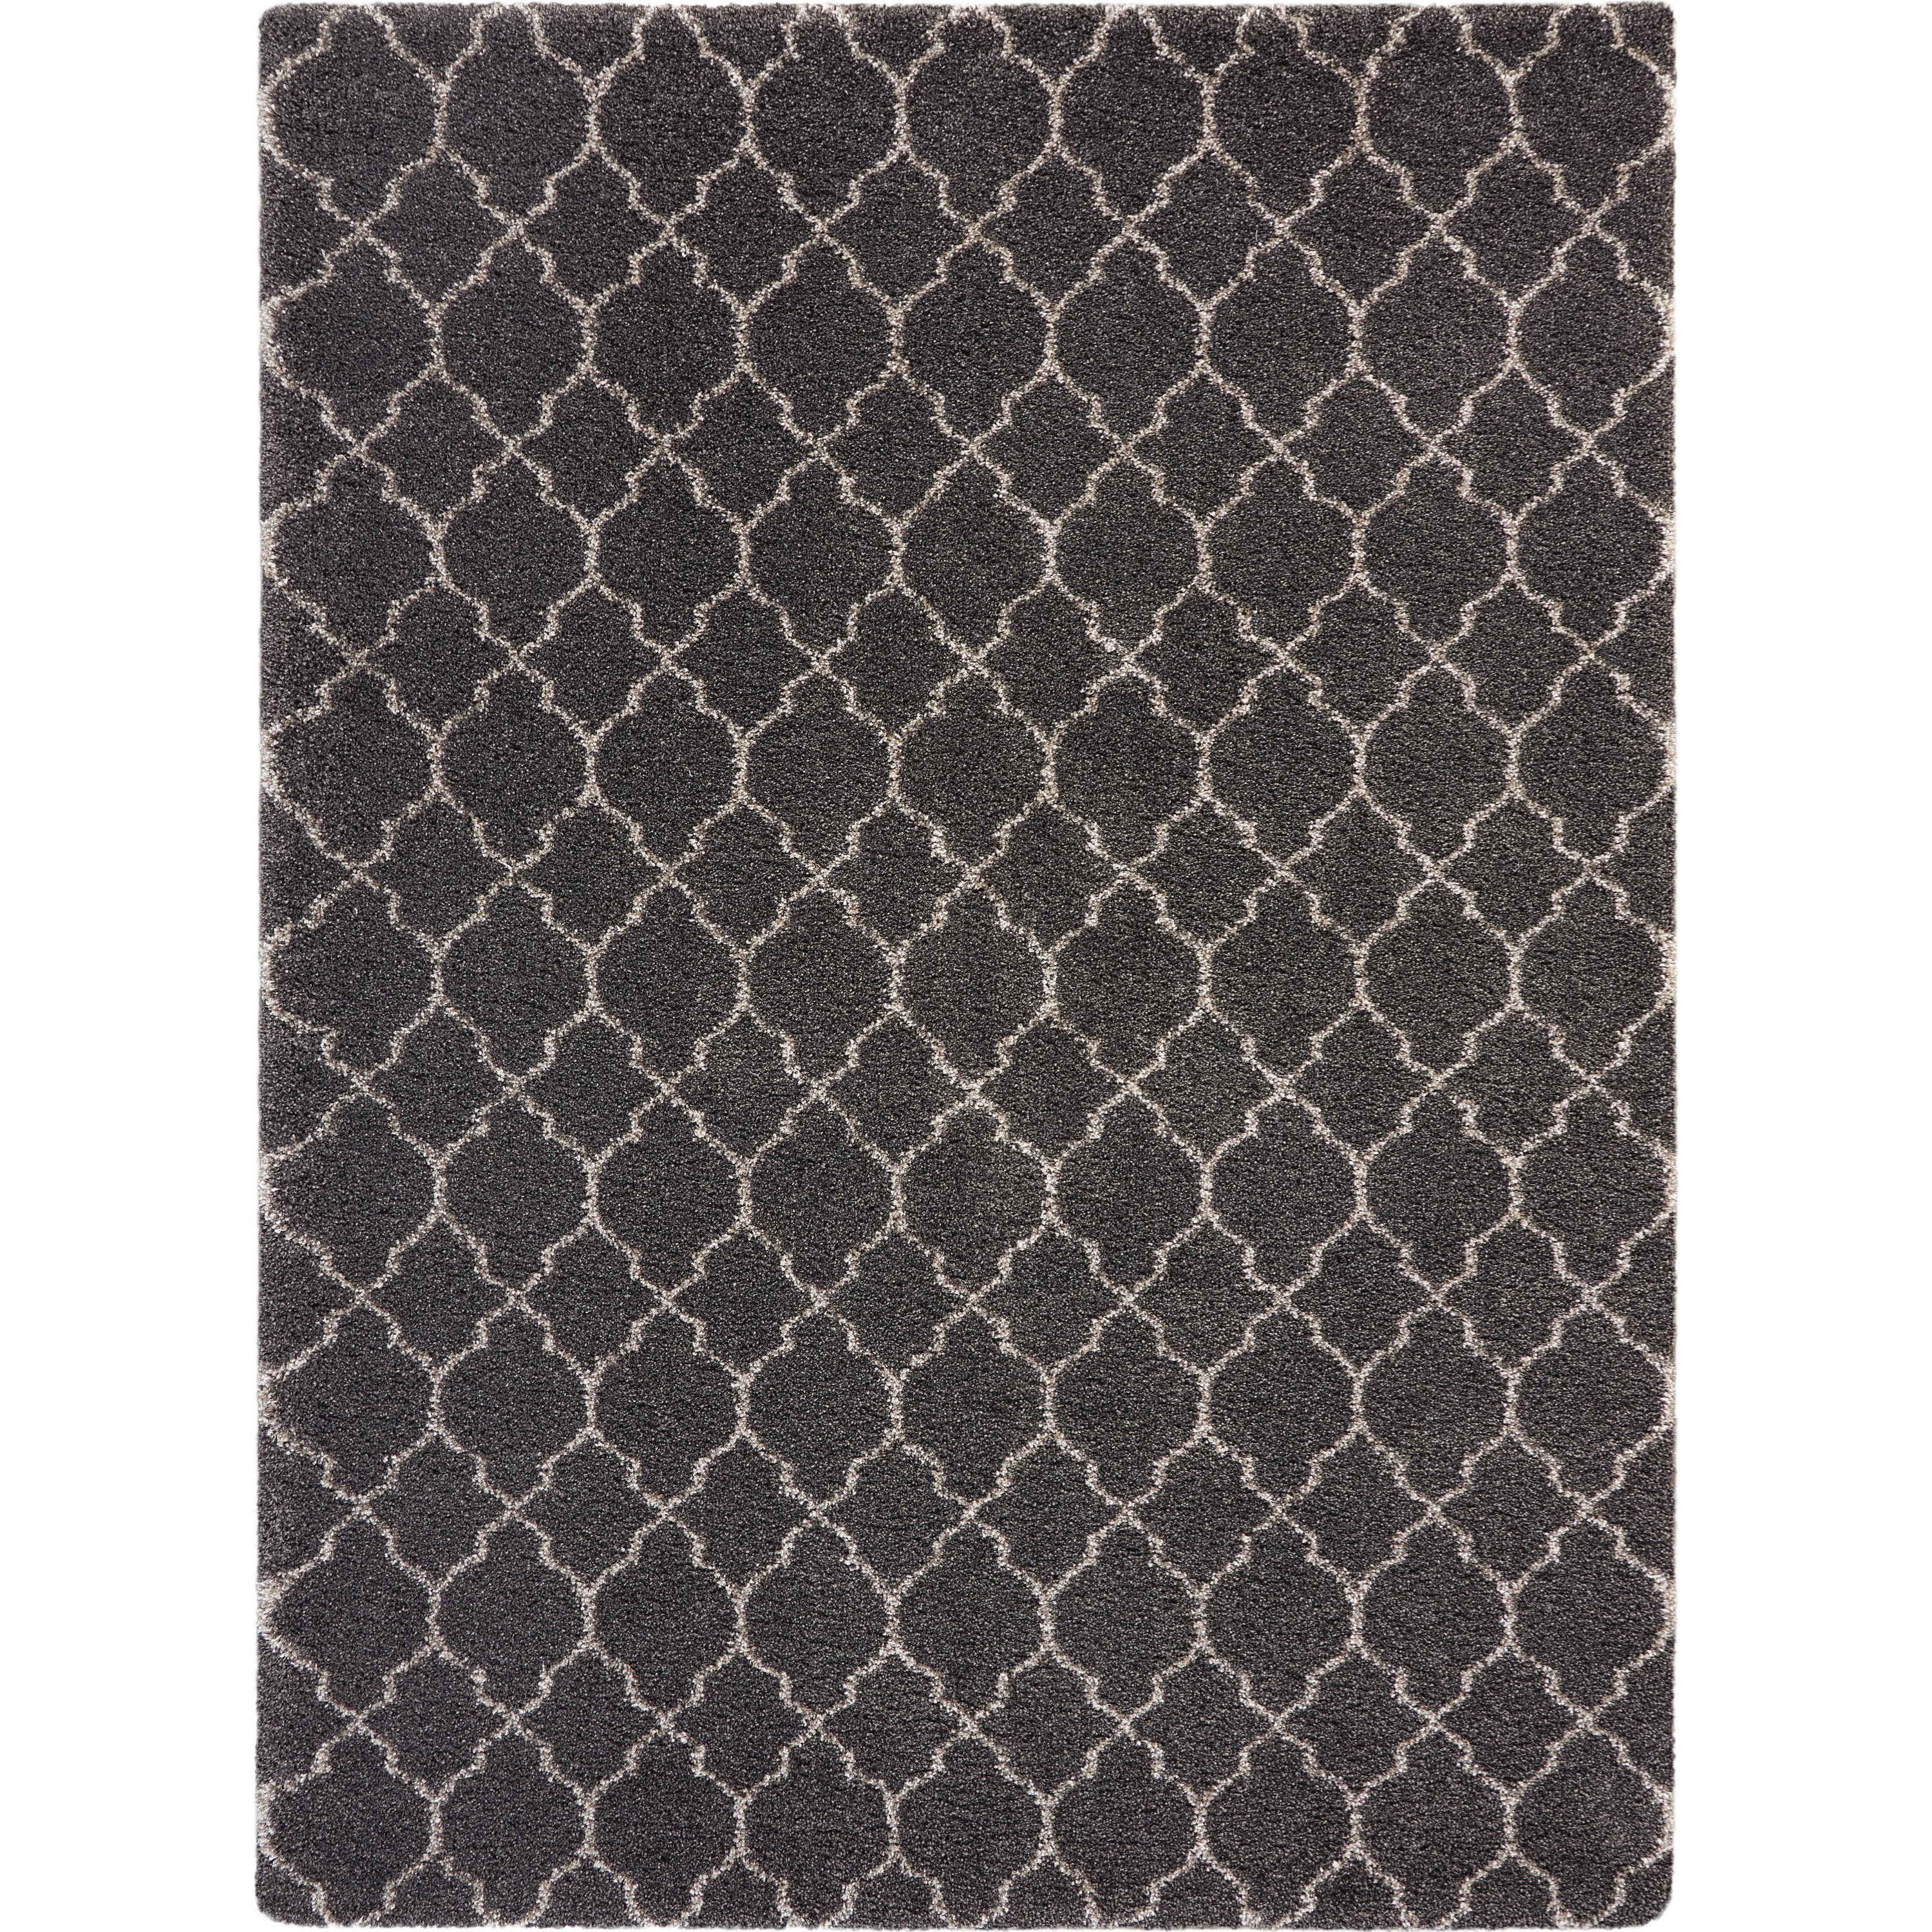 Amore Amore AMOR2 Black 8'x11'   Rug by Nourison at Home Collections Furniture